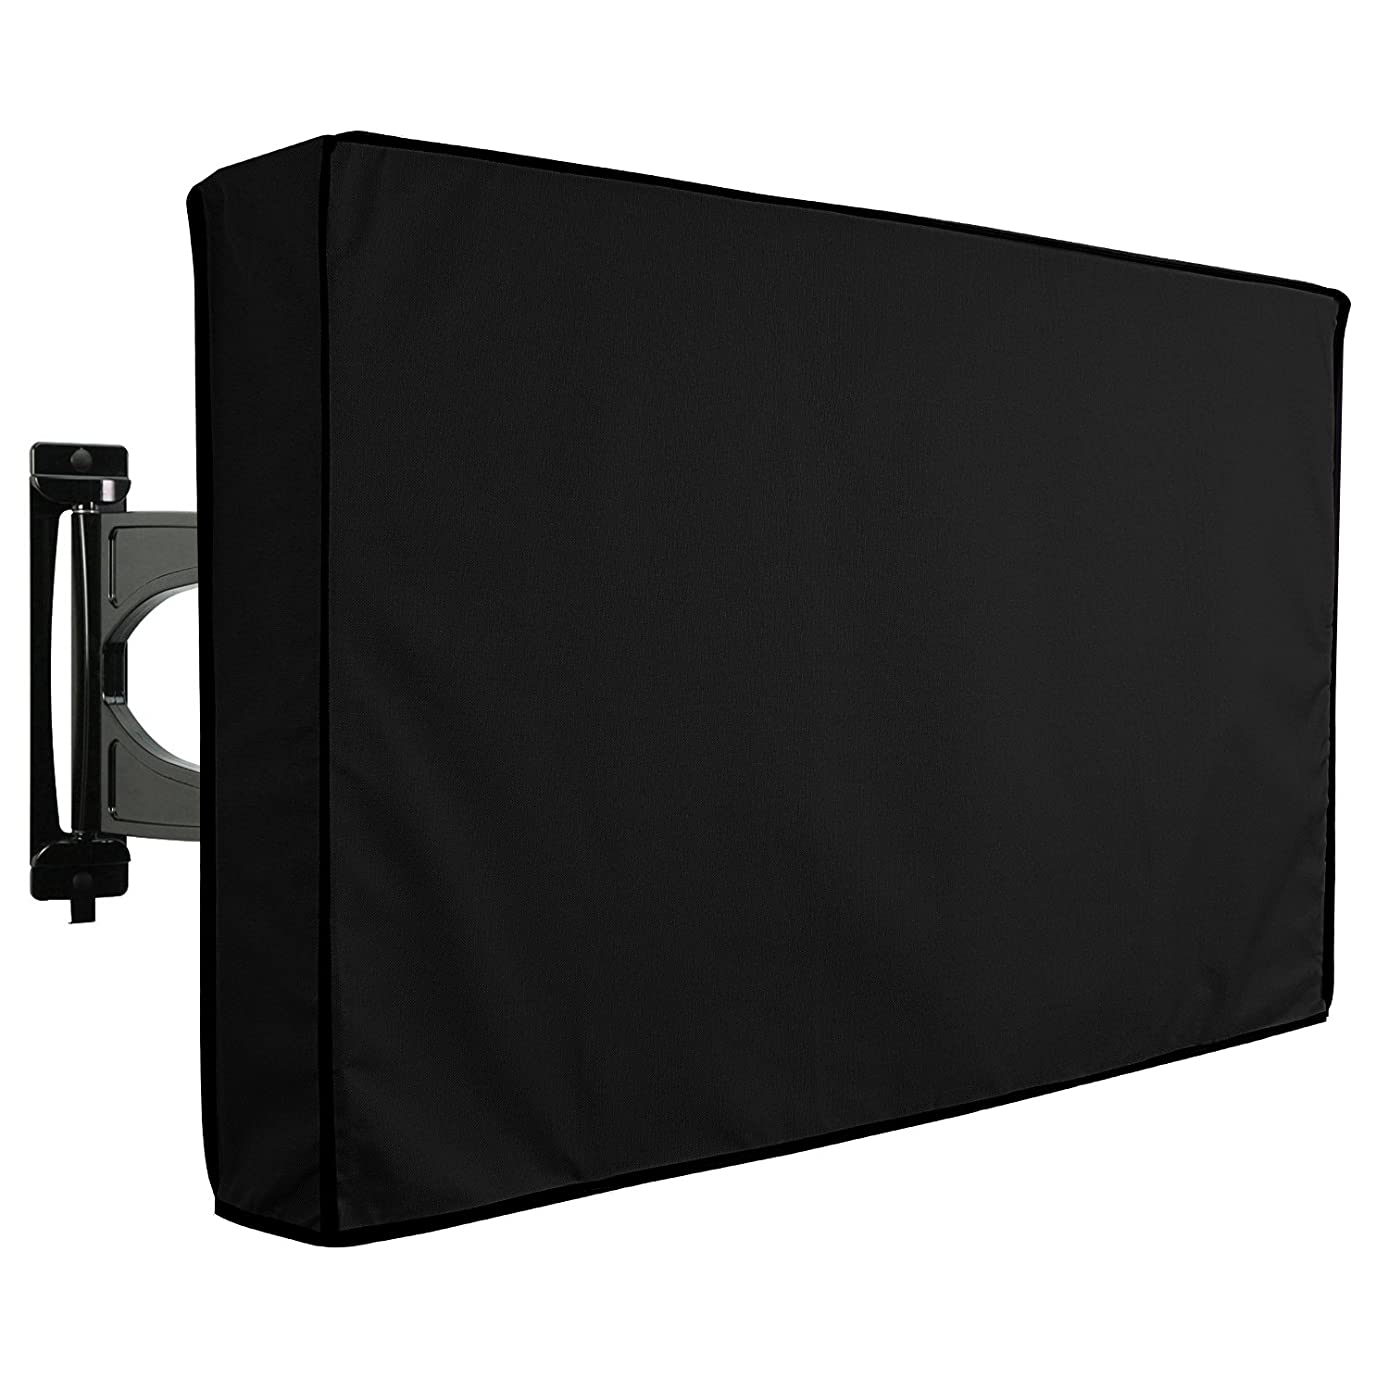 Outdoor TV Cover, Panther Series Weatherproof Universal Protector for 50'' - 52'' LCD, LED, Plasma Television Sets